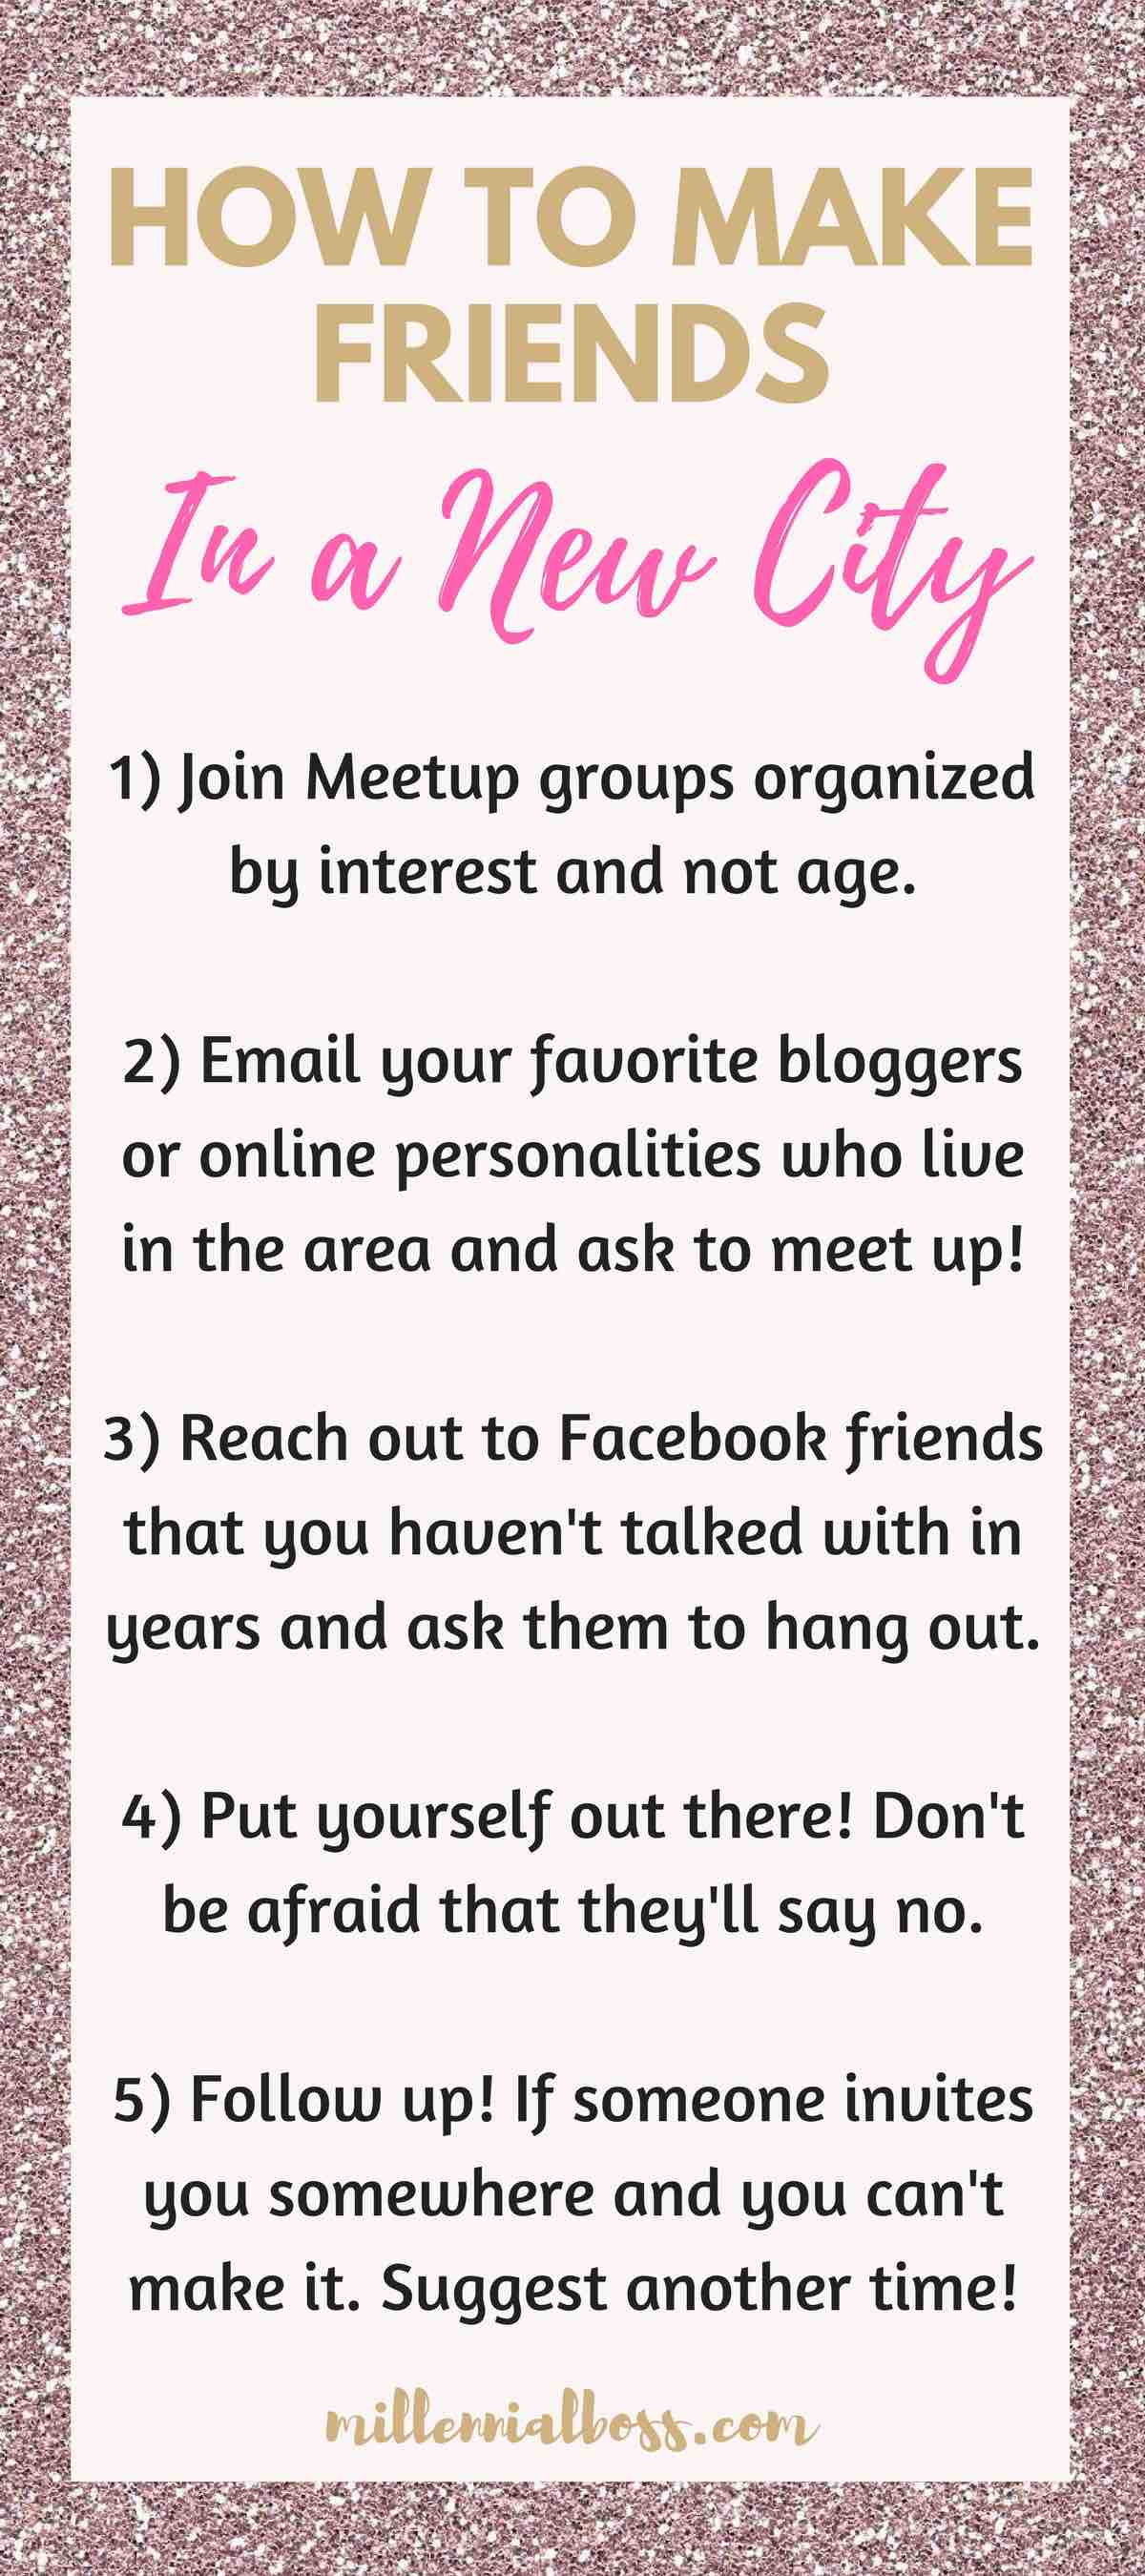 How to make friends in a new city | Can you make friends on Meetup | How to make friends